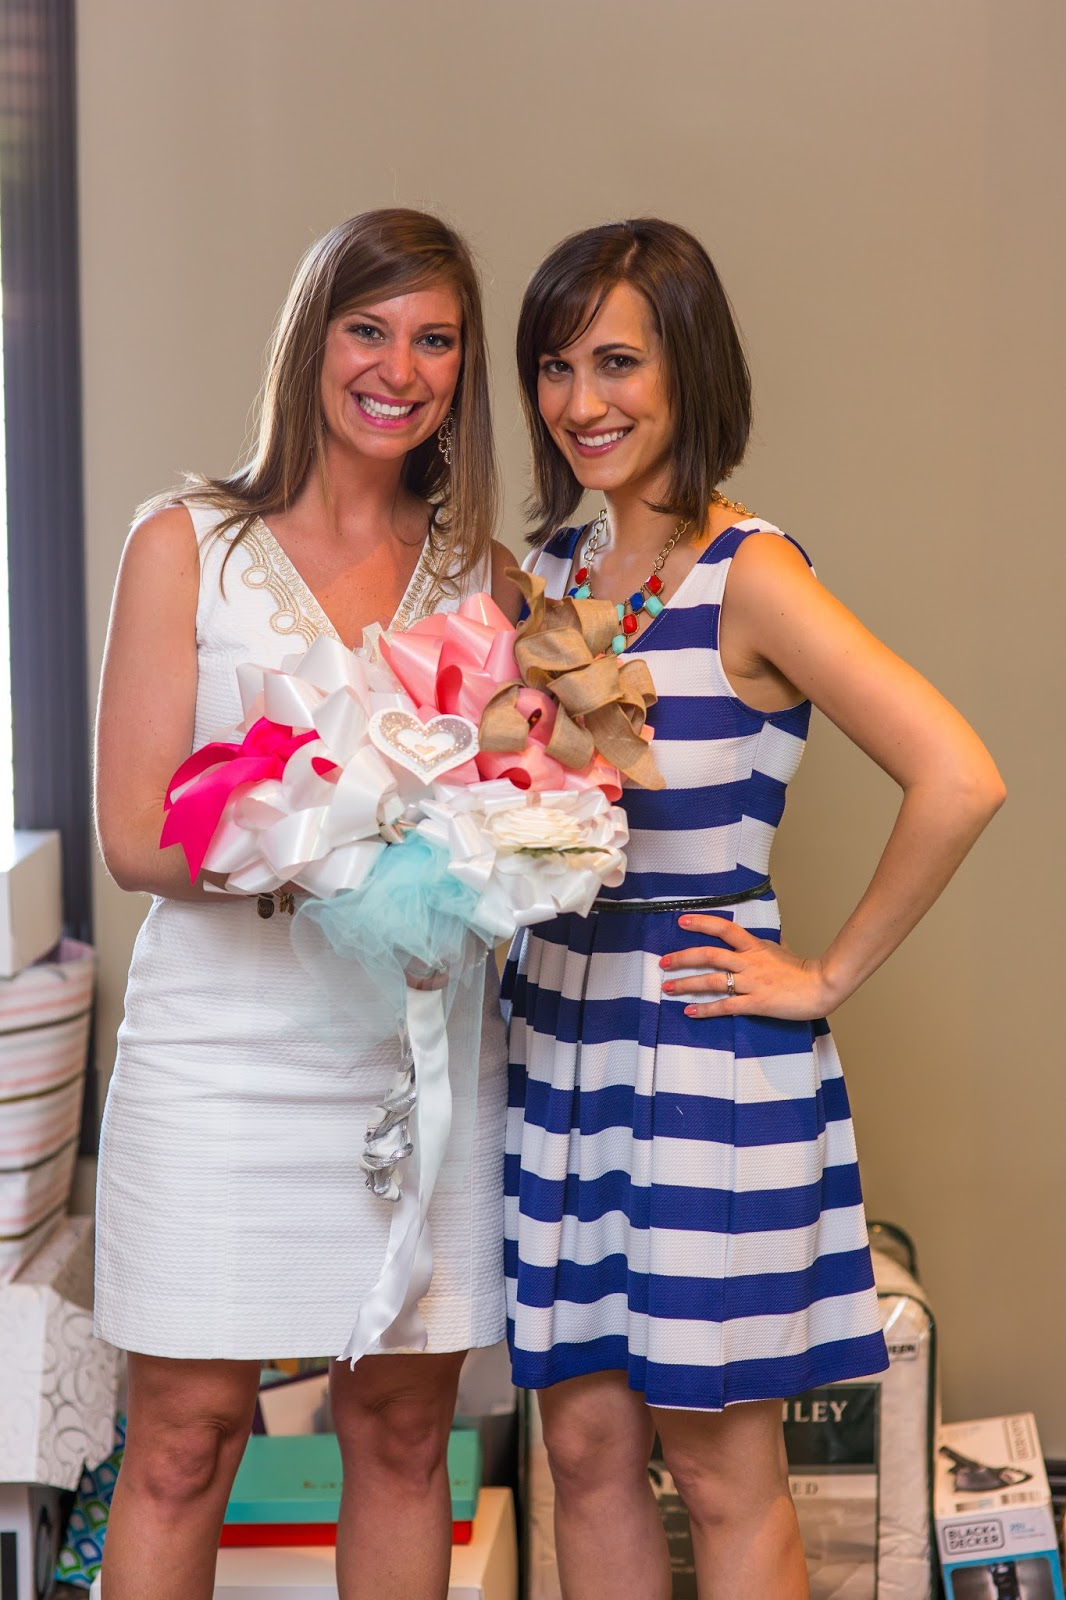 Appropriate Looks For Attending A Baby Shower Or Wedding Shower